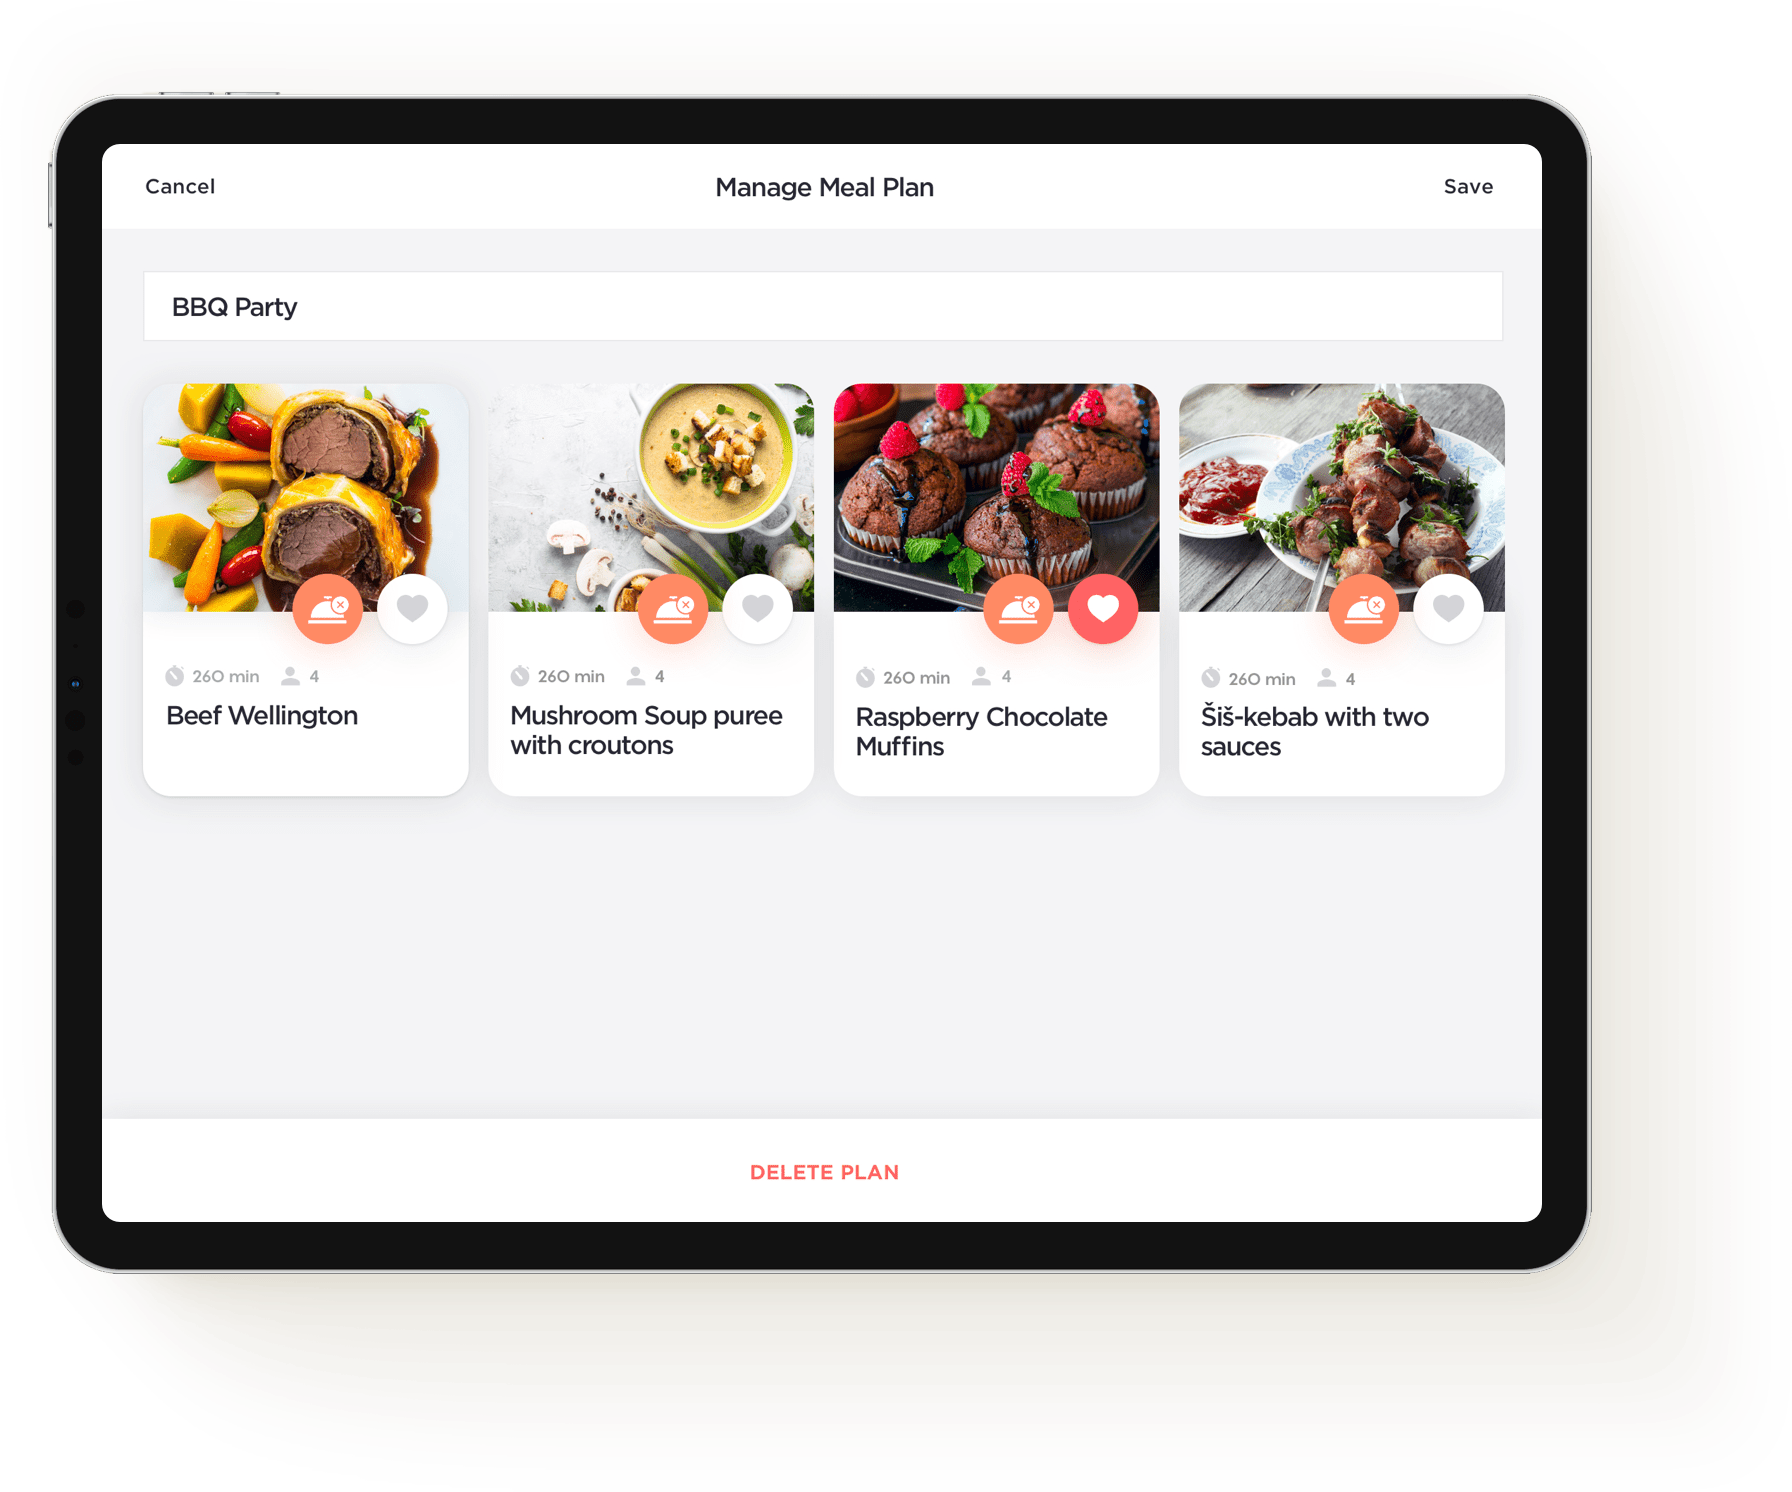 Yummy recipes manage meal plans